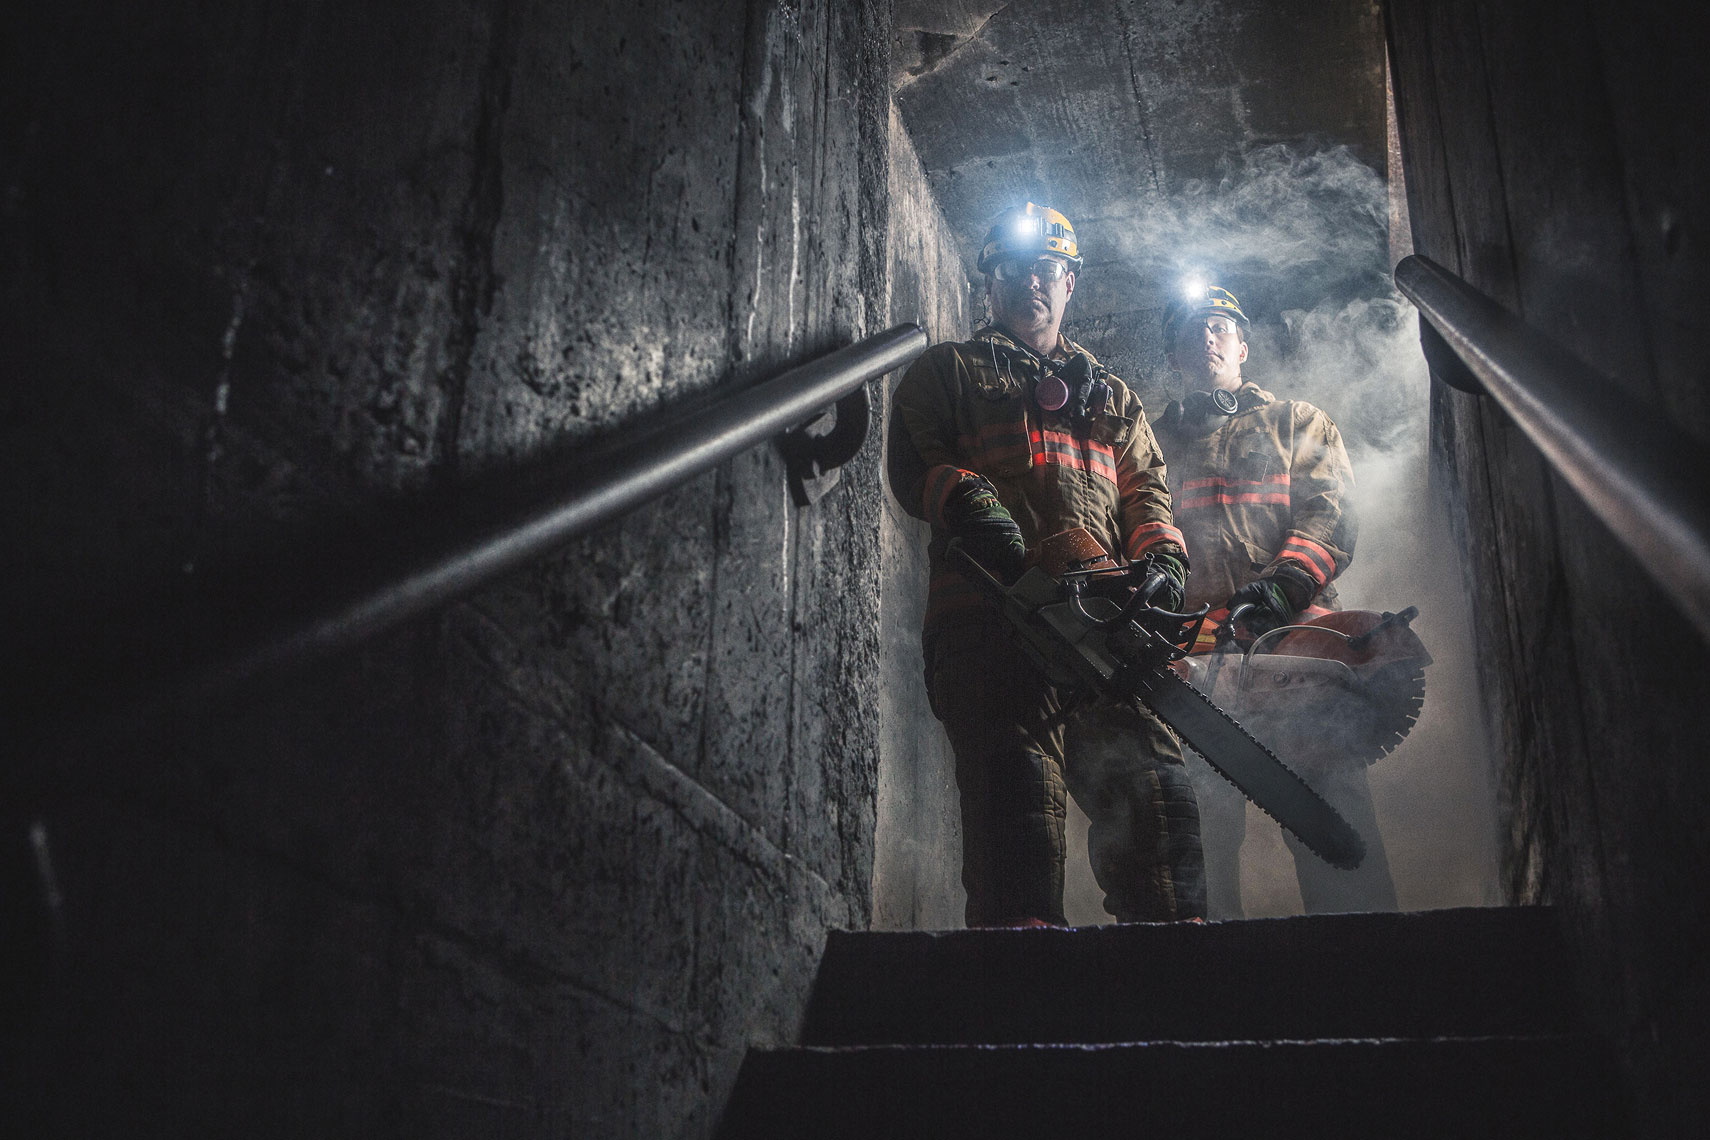 STIHL Fire & Rescue Team Portrait | John Fedele Product Photography